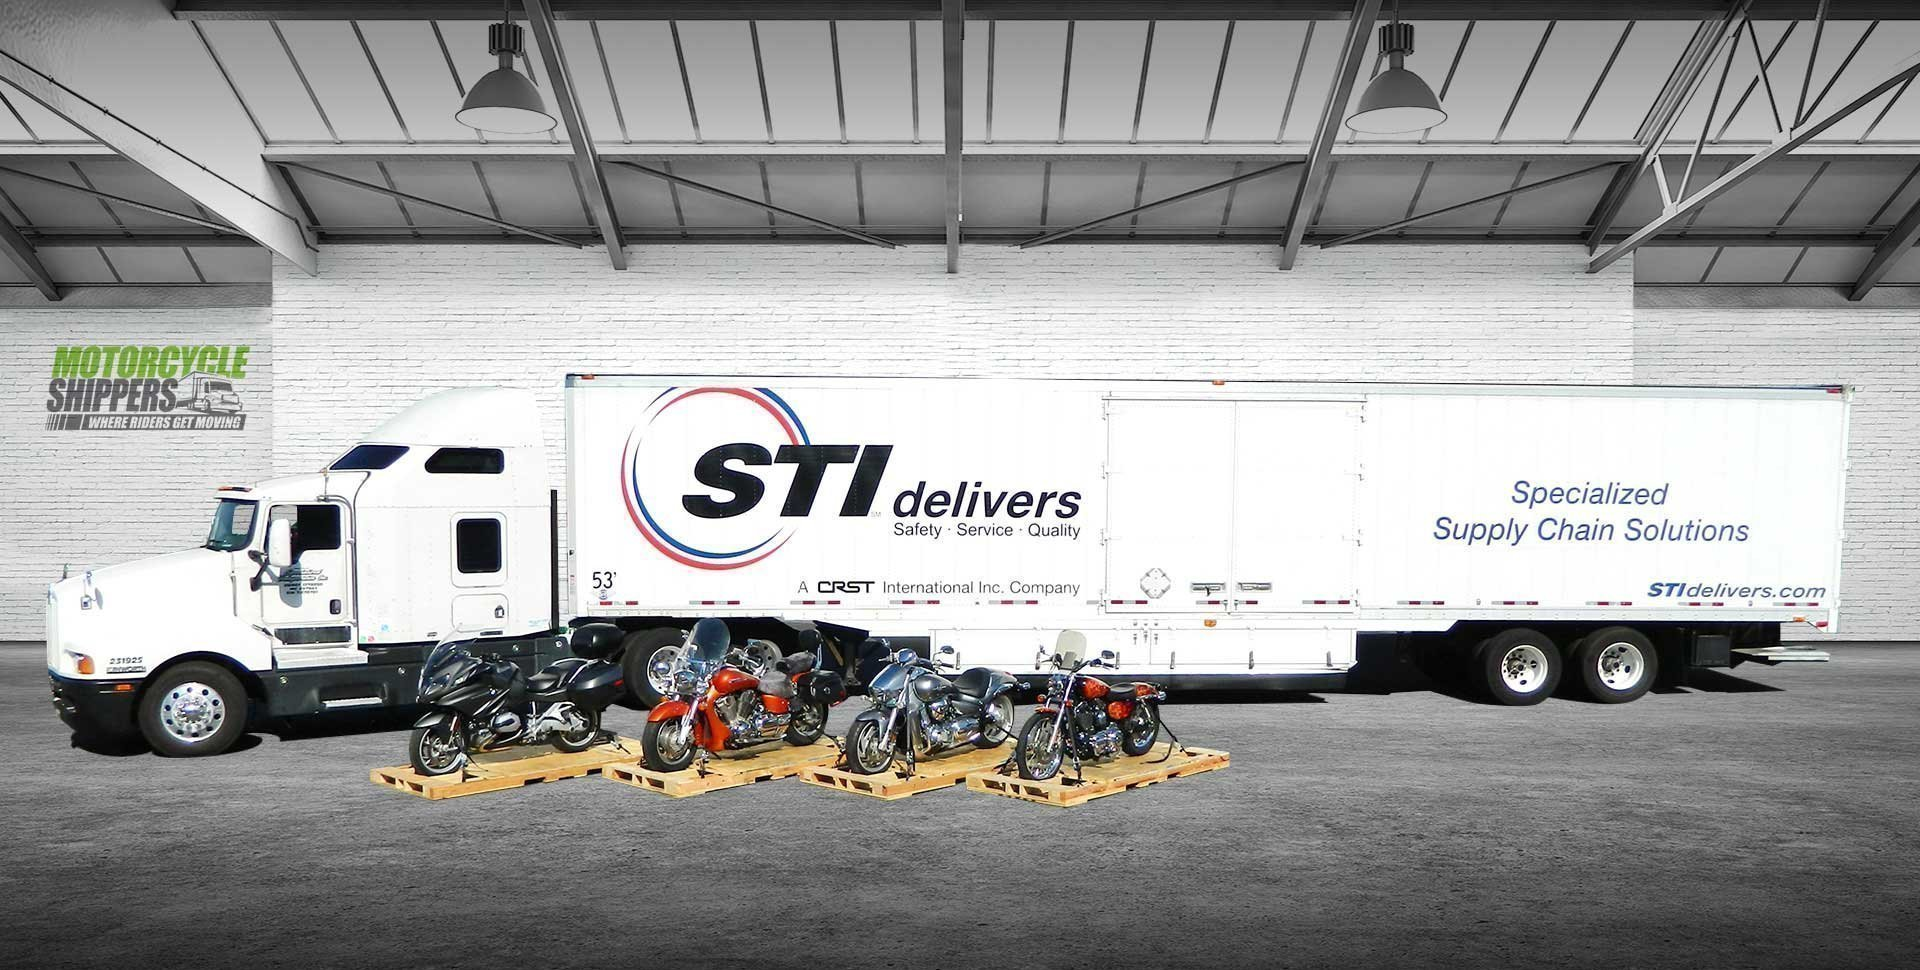 Truck and Motorcycles Parked in Warehouse